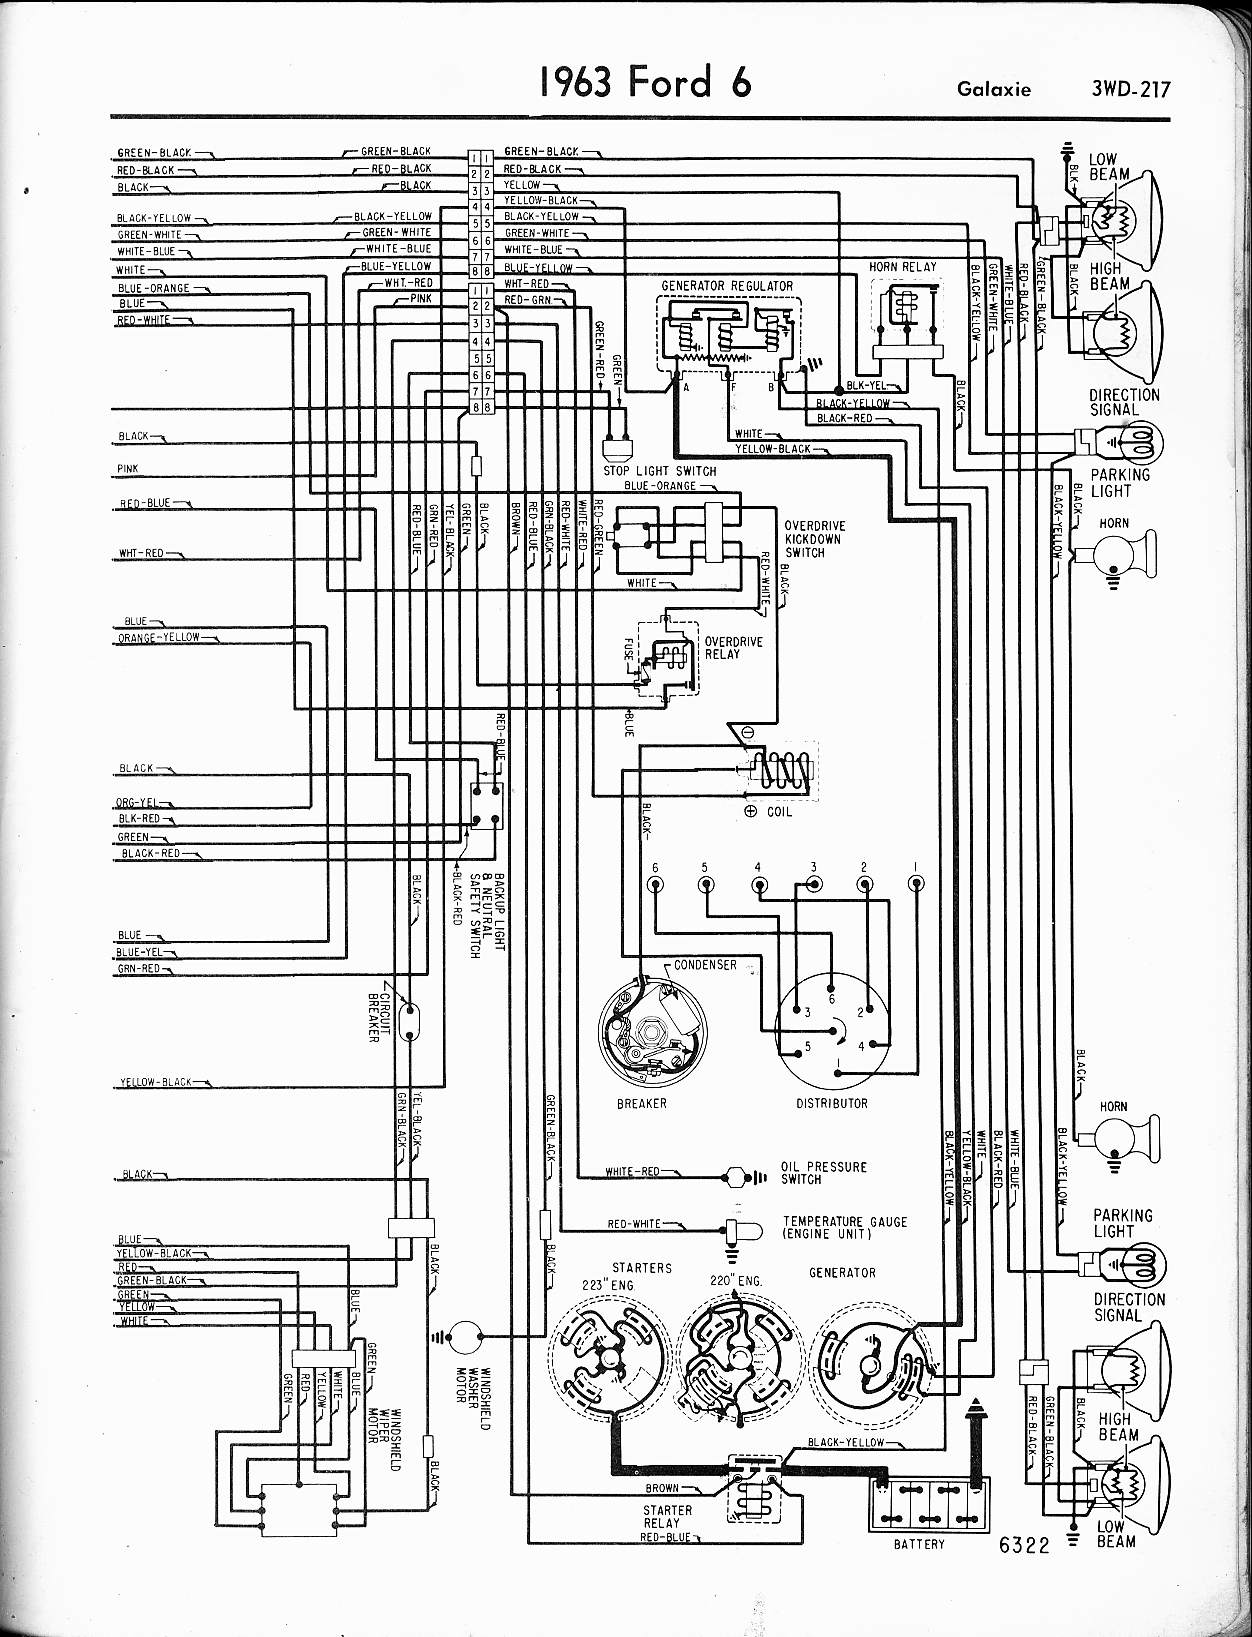 [WRG-8679] 1964 Galaxie Wiring Diagram